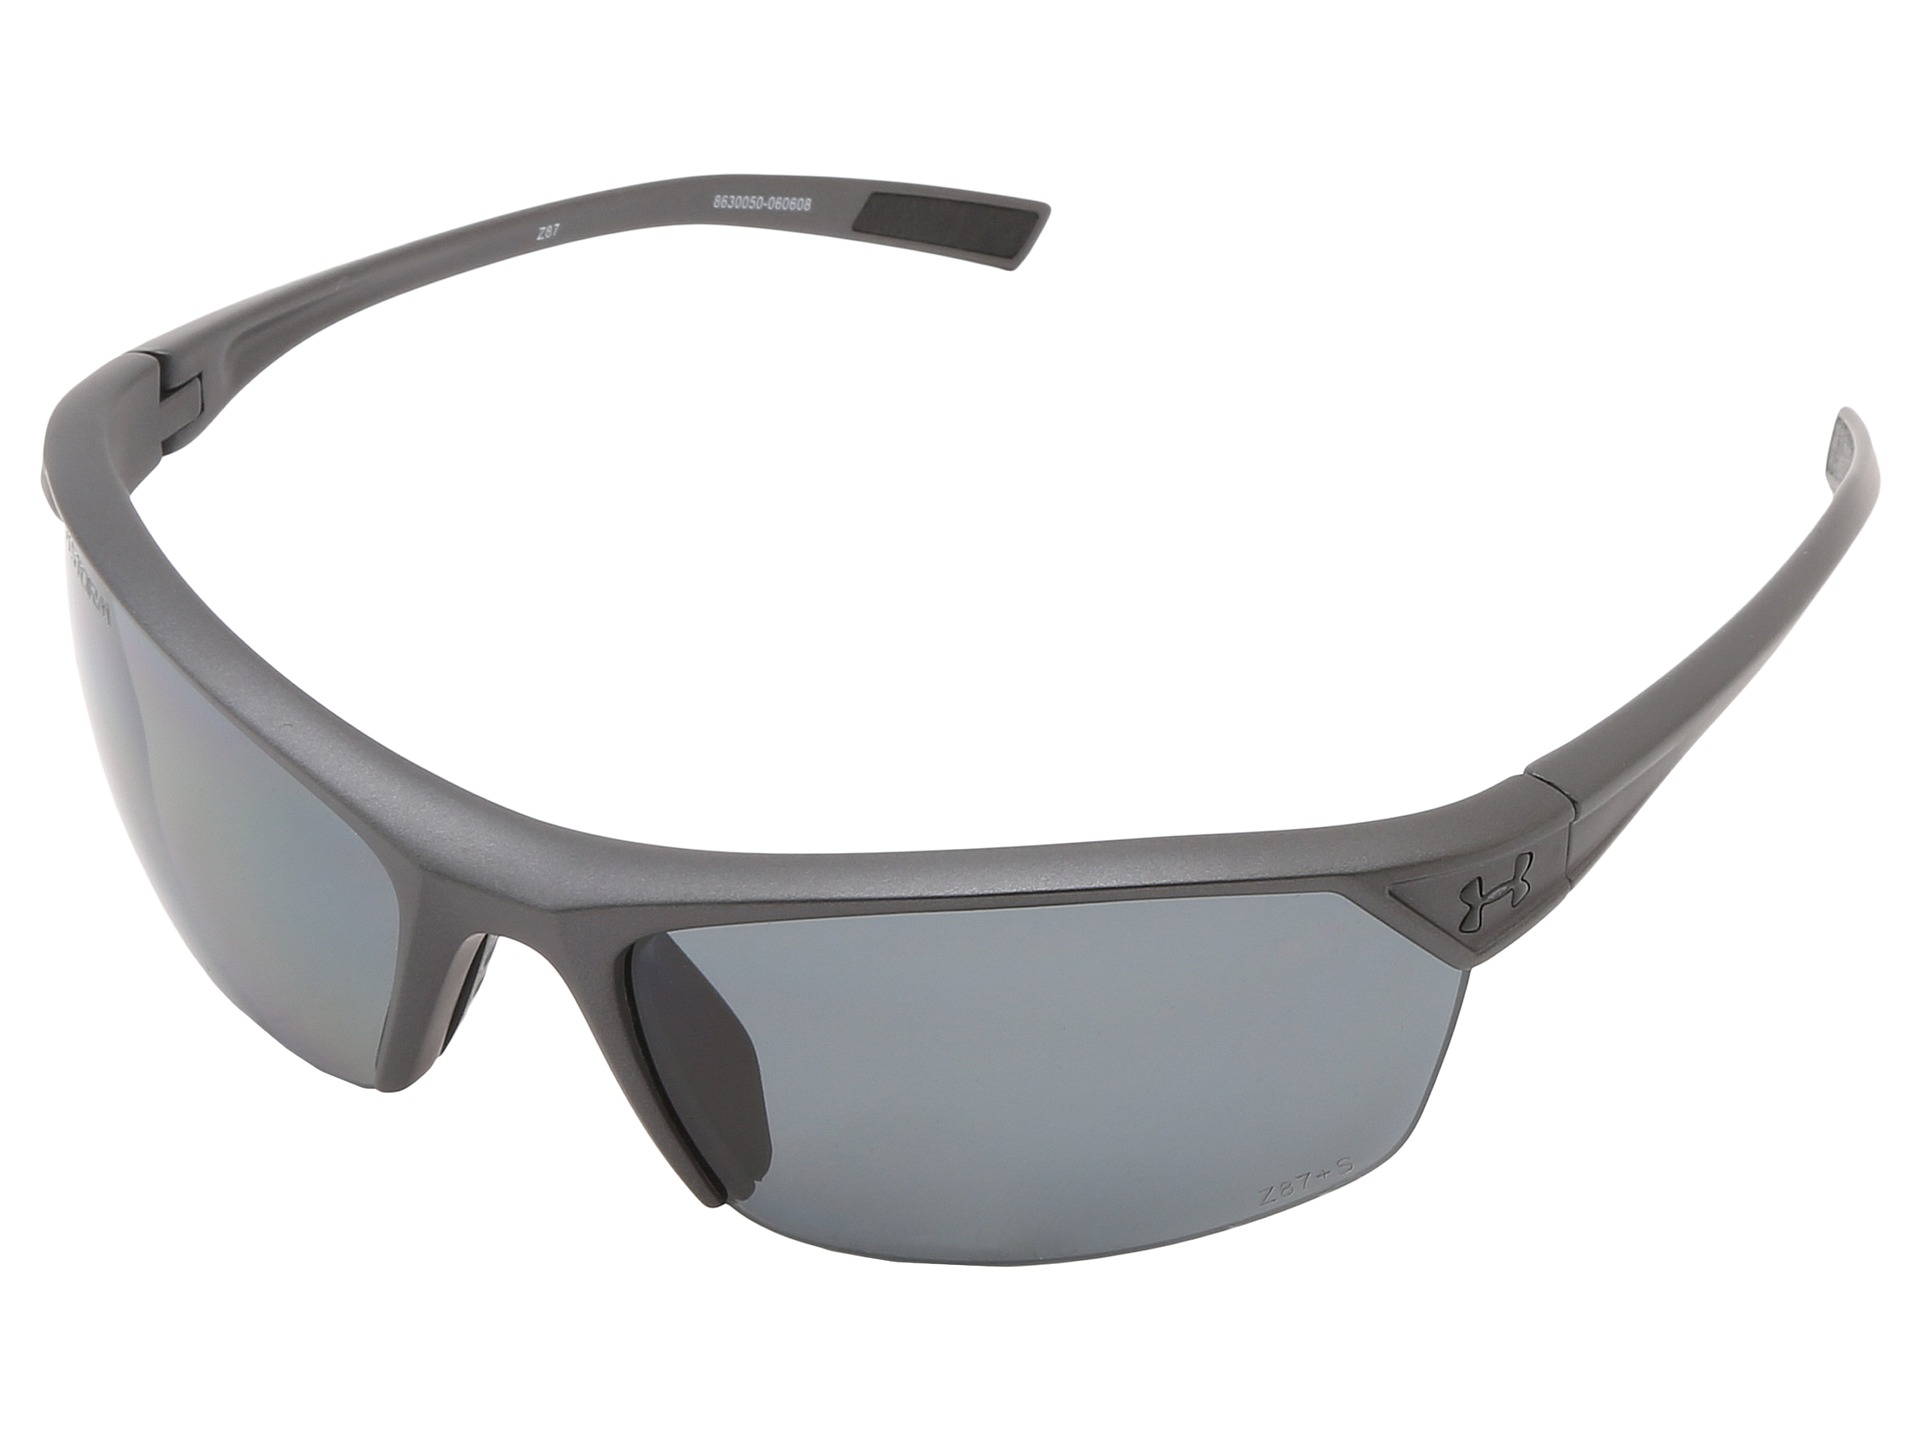 7c672a9e71 Under Armour UA Zone 2.0 Storm Satin Carbon Frame W  Black Rubber   Gray  Polarized Lens